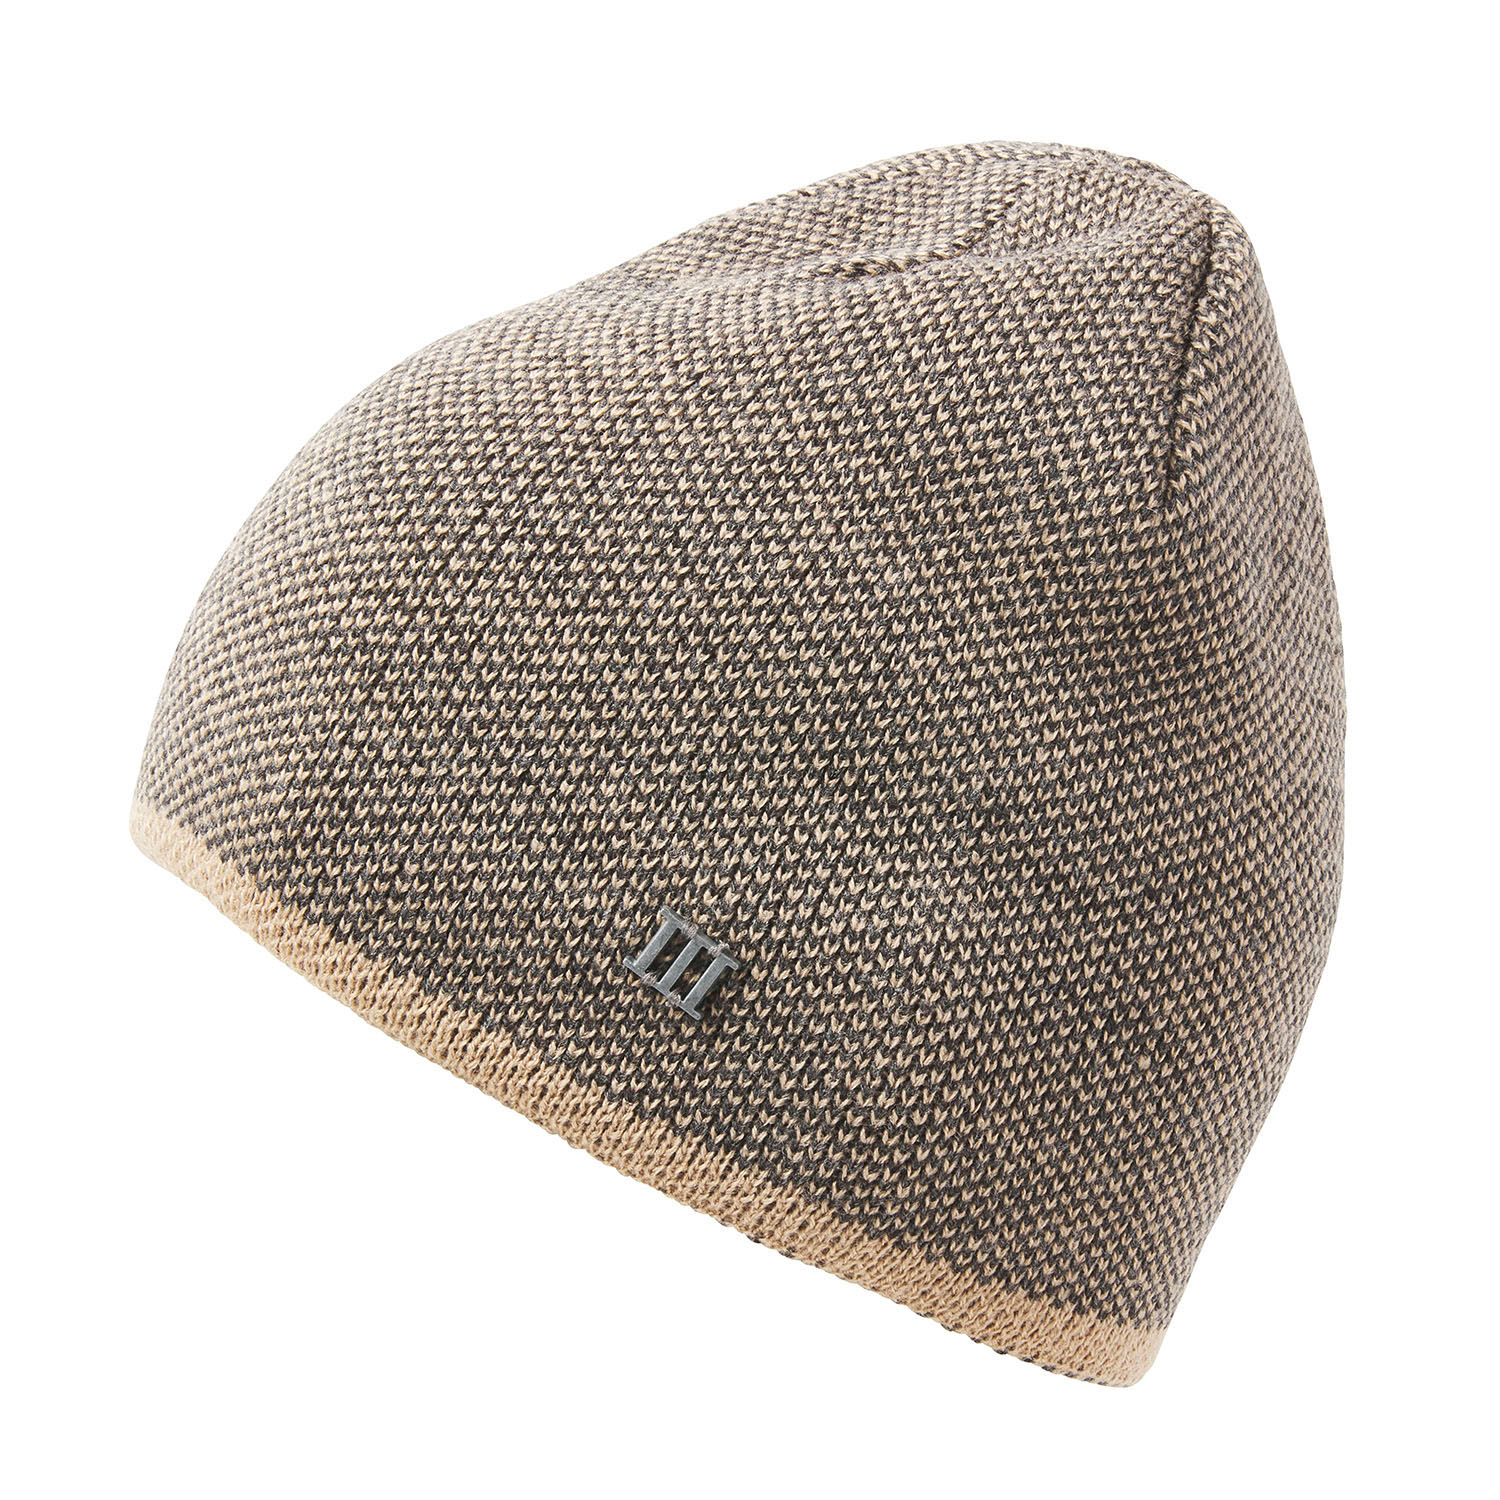 EASTMAN | Fine knitted beanie with colored border in beige